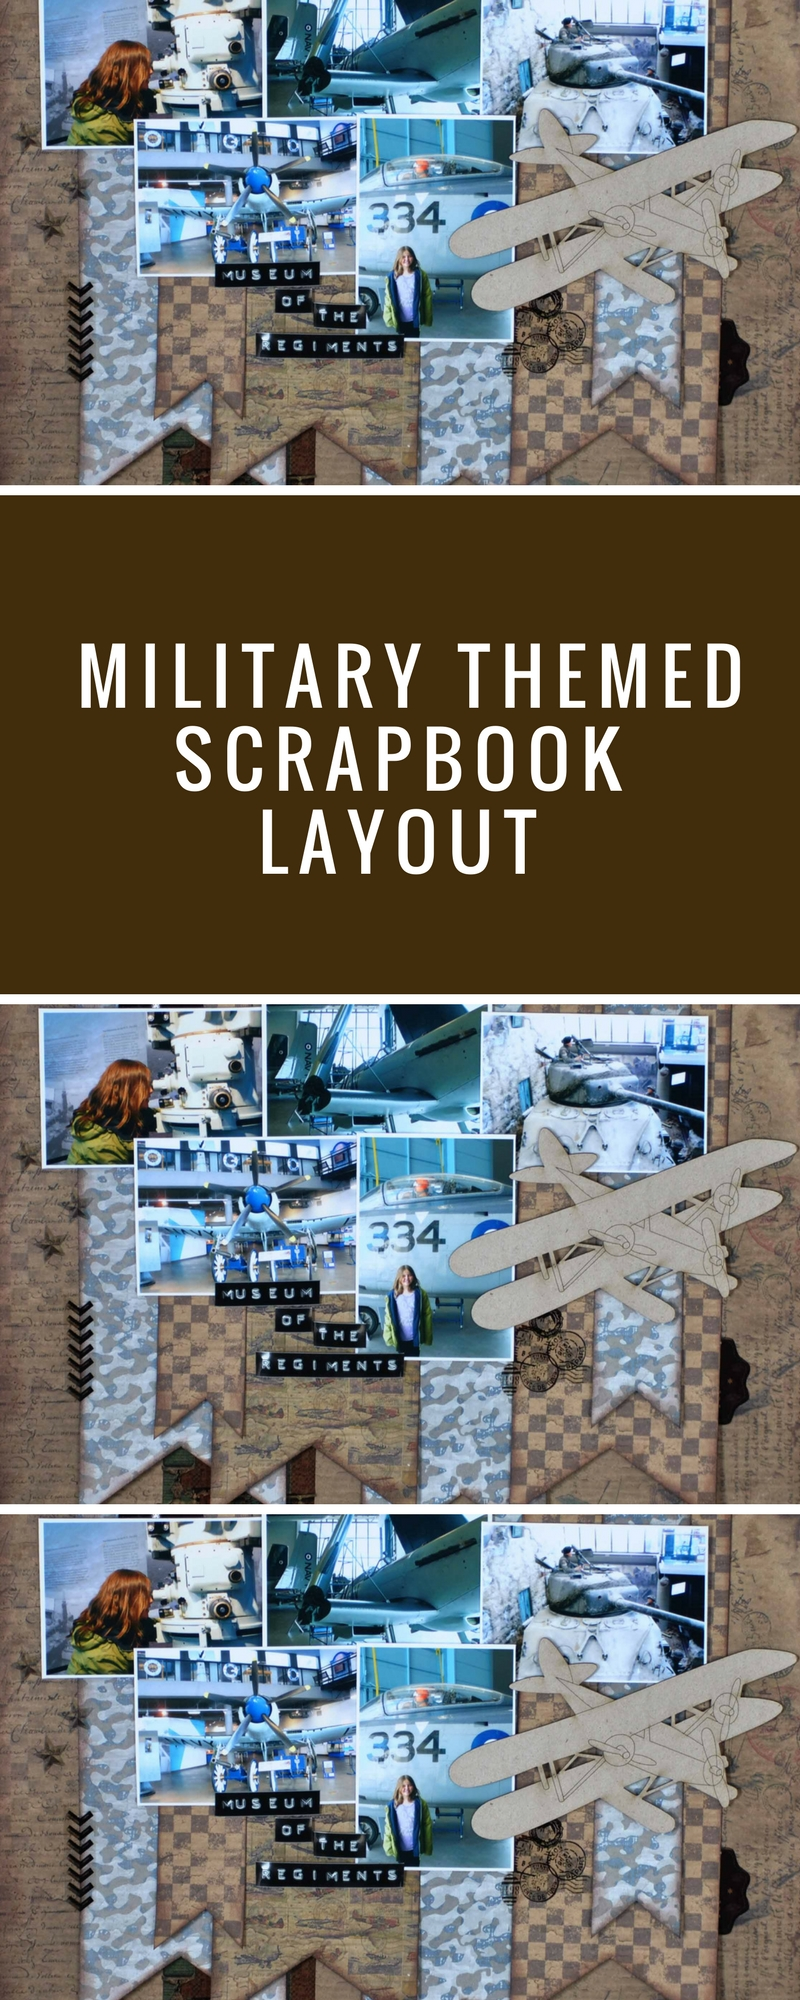 Military Themed Scrapbook Layout | 12X12 Layout | FabScraps | Christy Riopel | Creative Scrapbooker Magazine